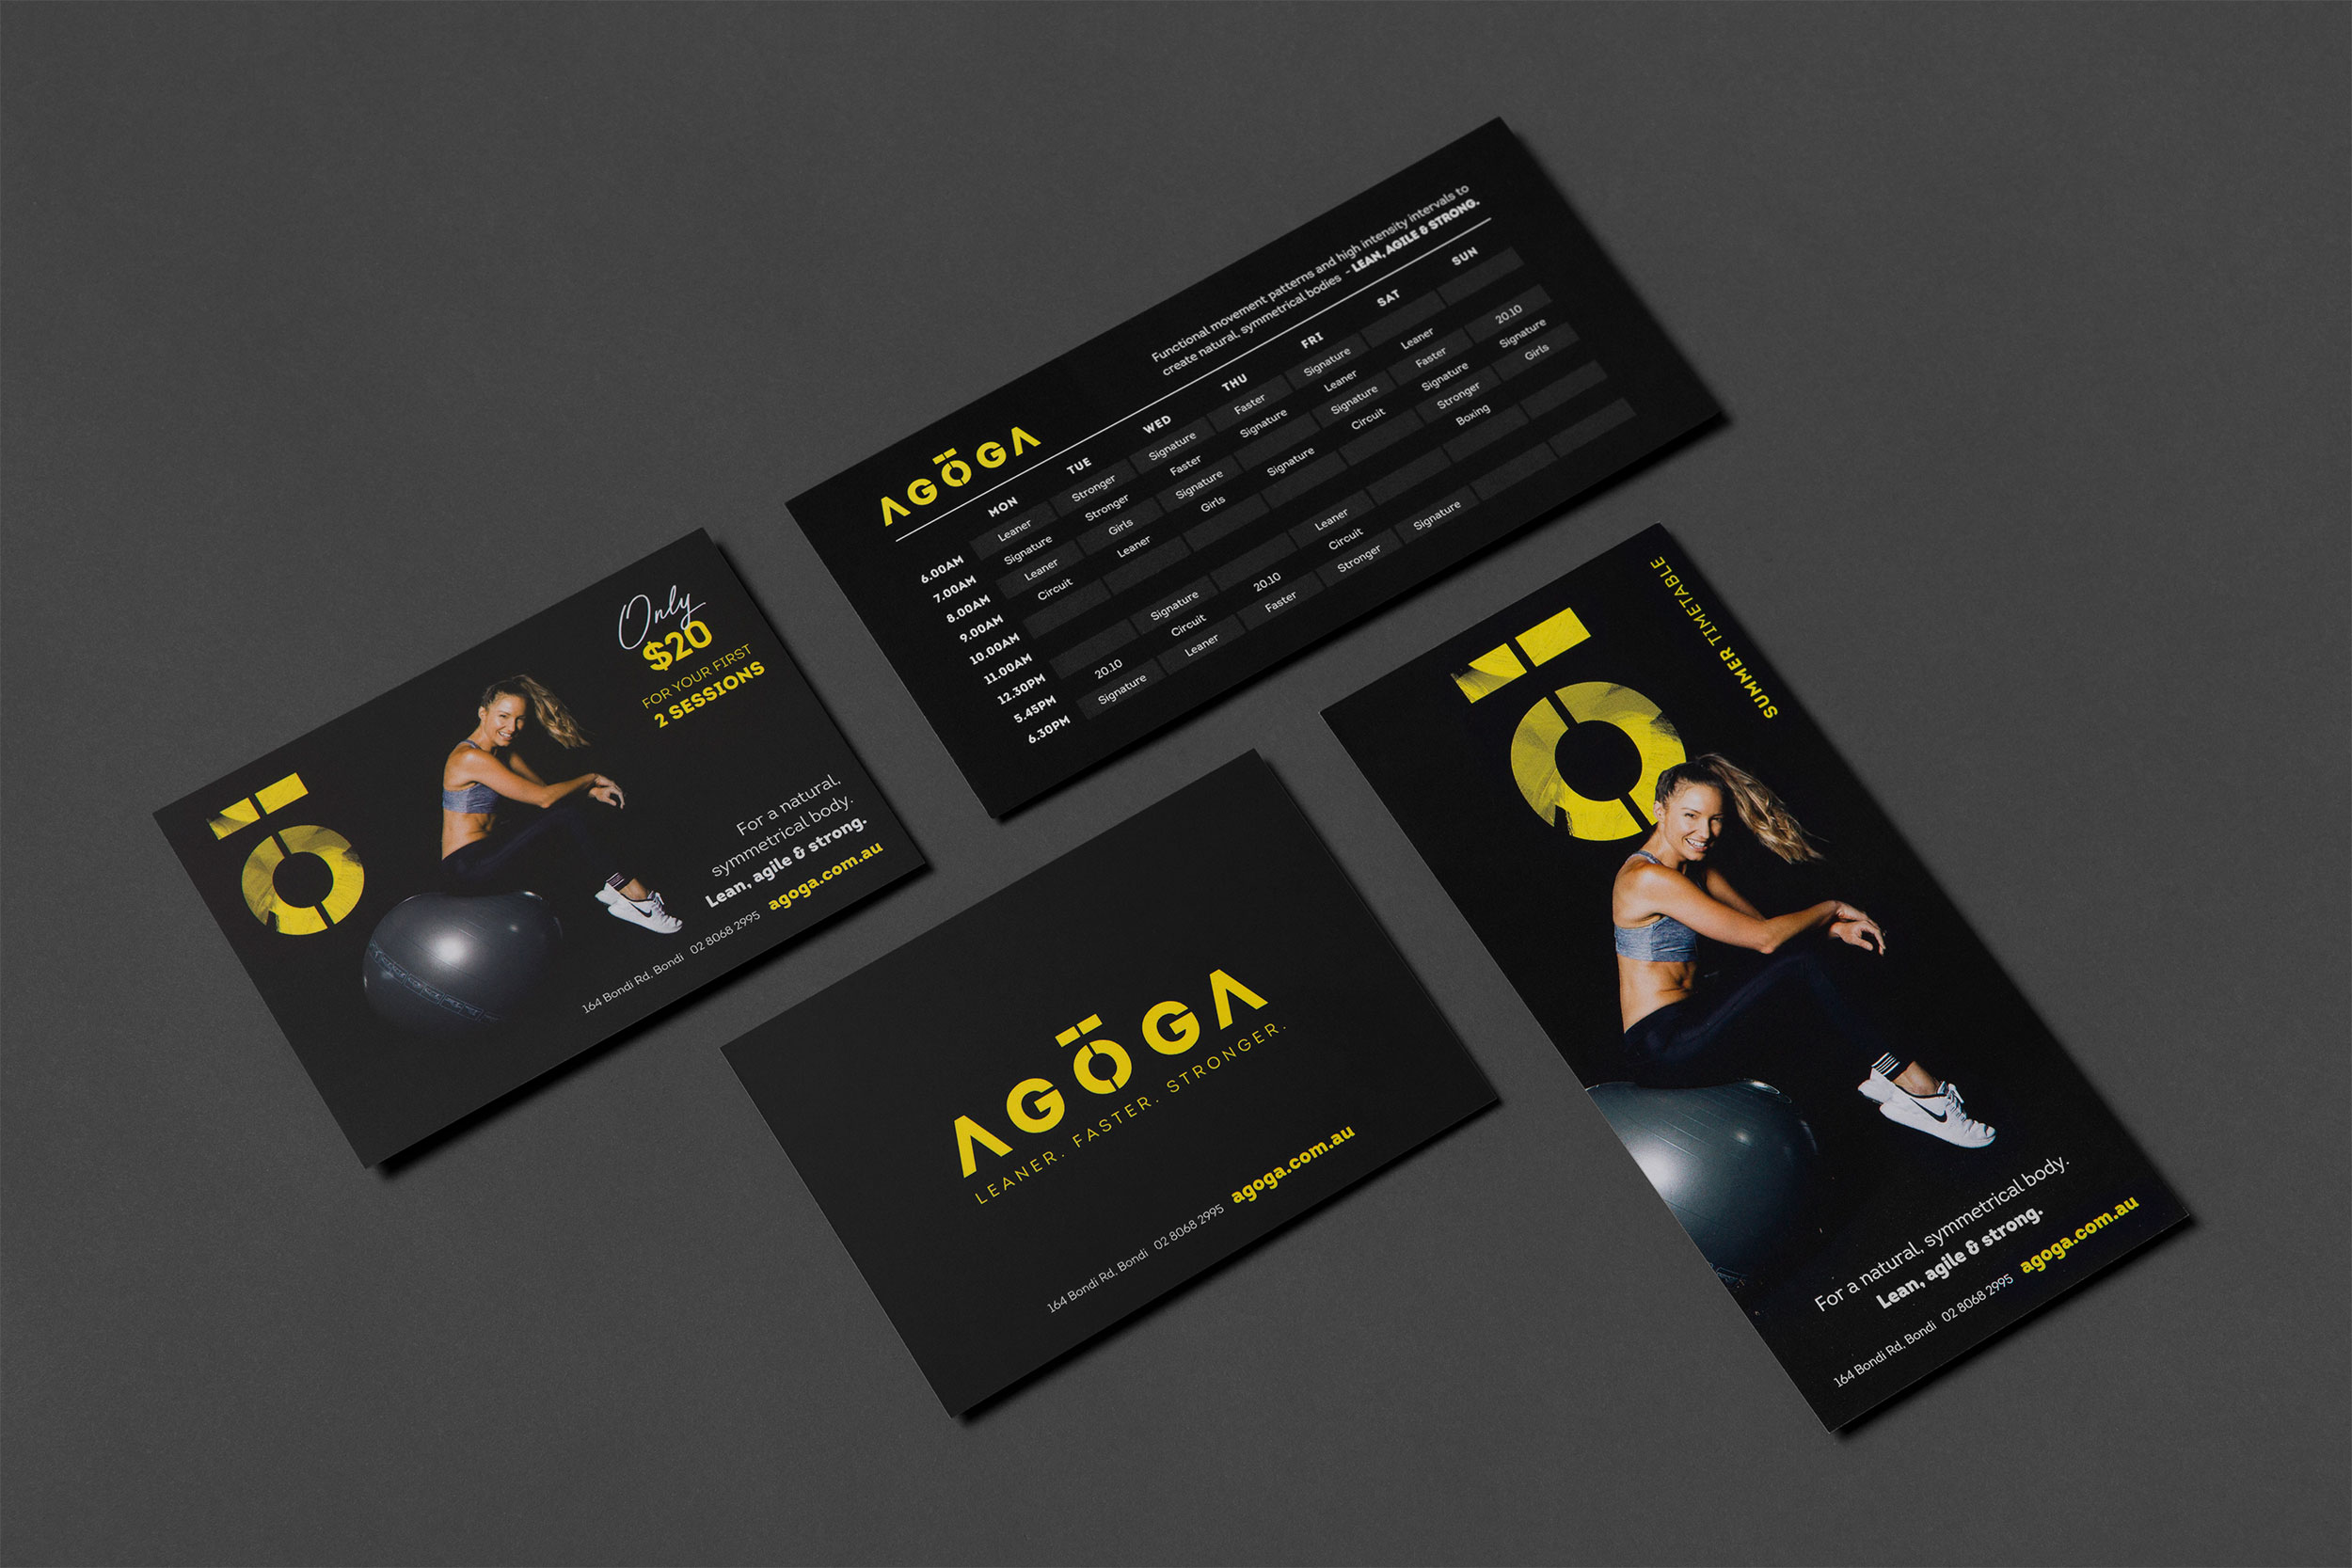 A collection of print media designed for Agoga Bondi including a class timetable and promo flyer